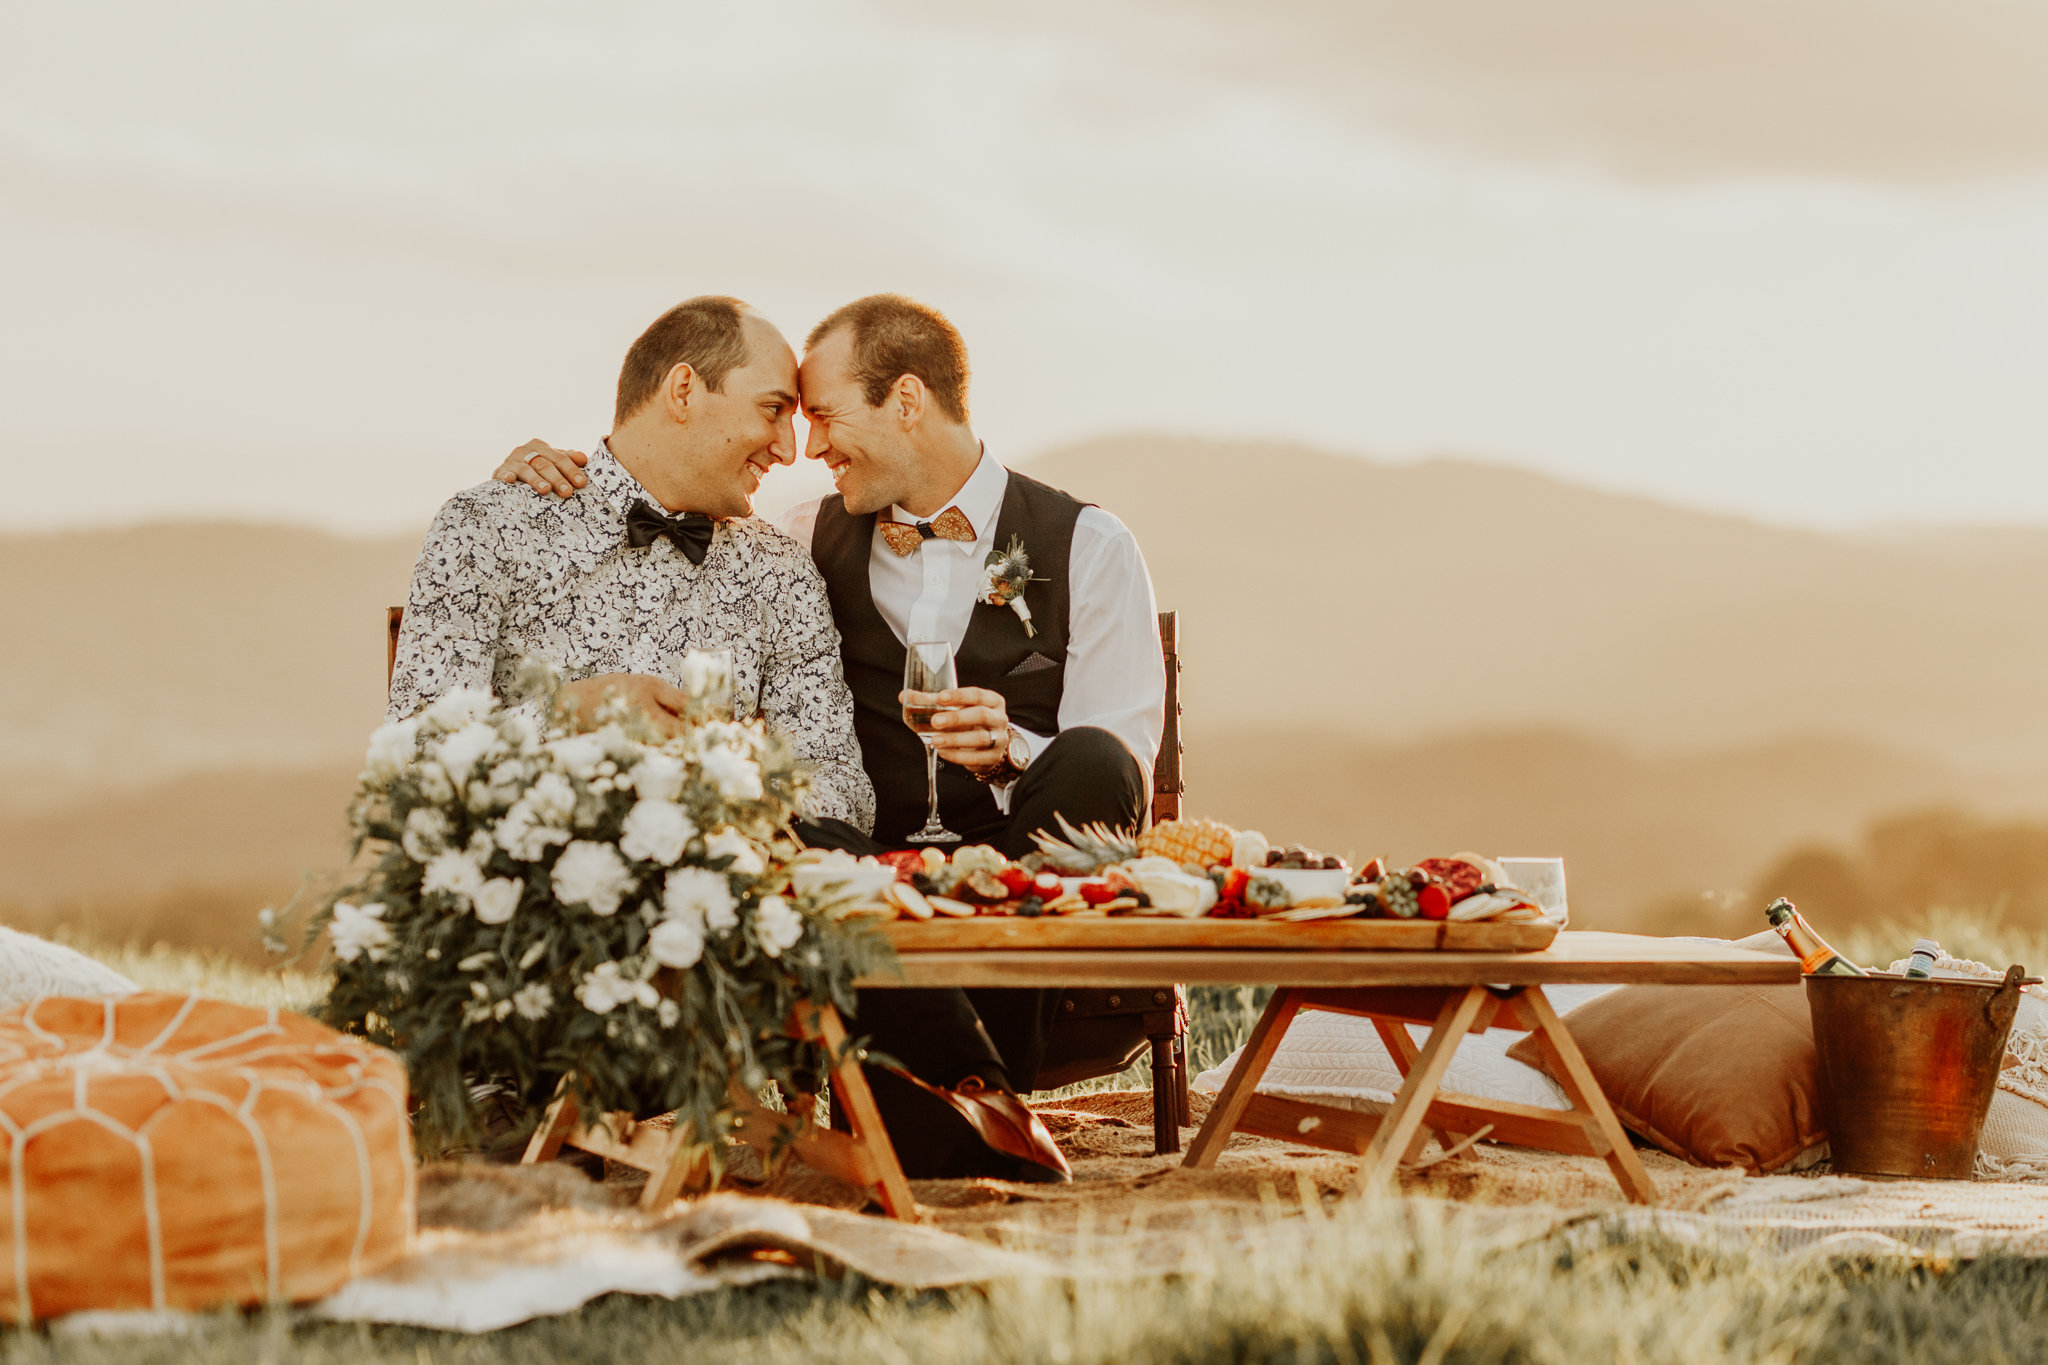 Intimate Hinterland Elopment A Styled Shoot-SUBMISSION-0075.jpg